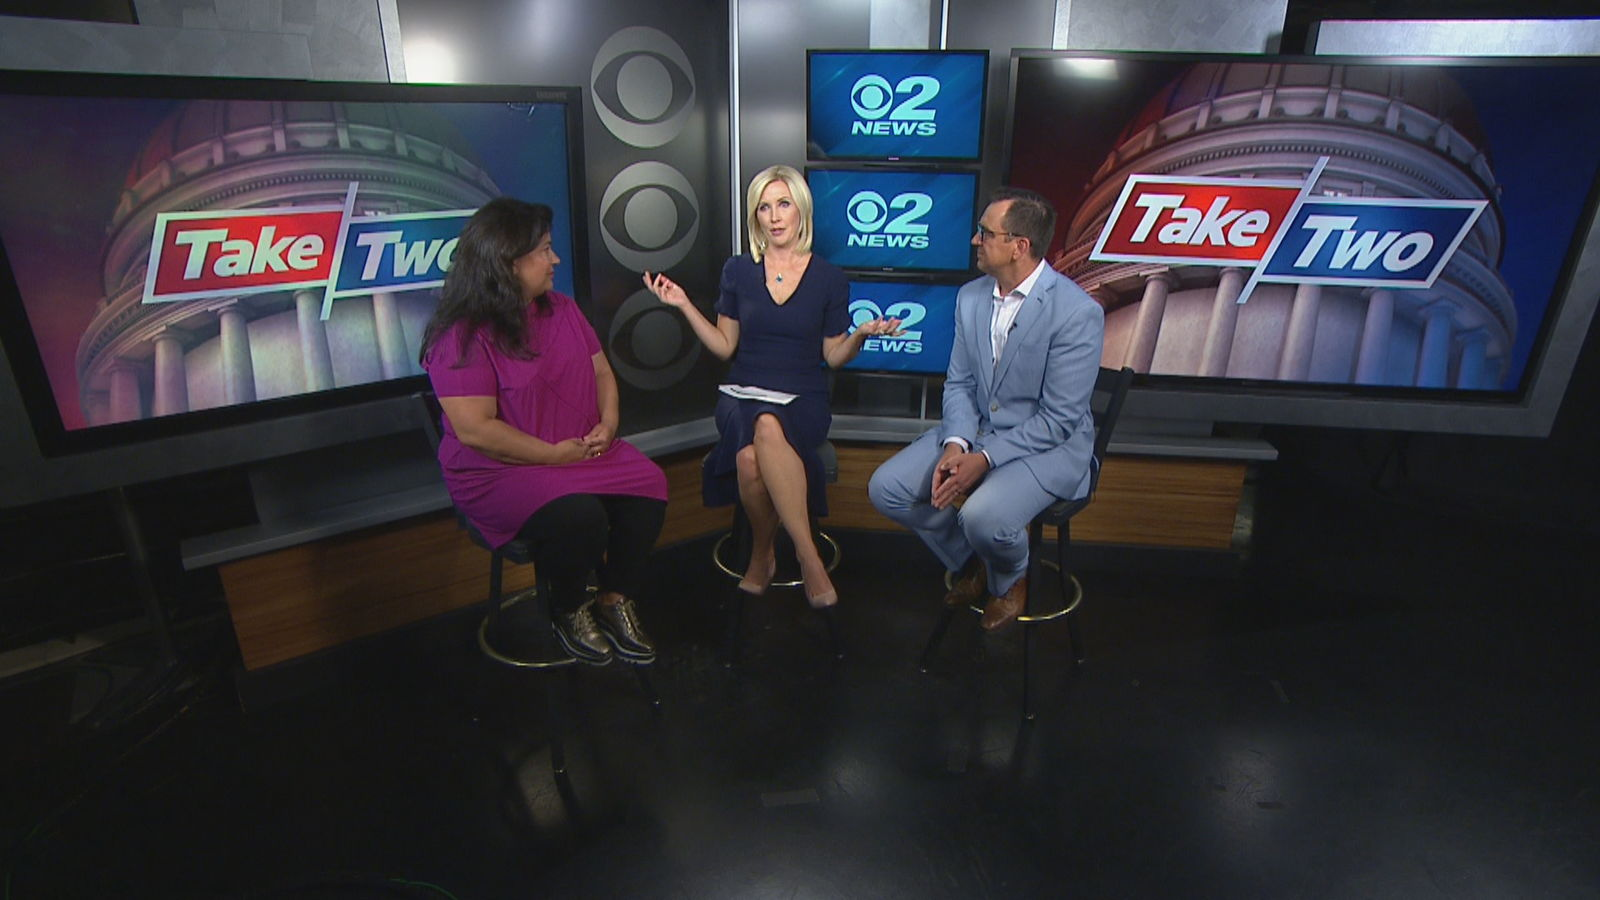 Episode 18 of the Take 2 podcast featured 2News Anchor/Reporter Heidi Hatch hosting former Speaker of the House Greg Hughes (R) and guest Maura Carabello of The Exoro Group. (Photo: KUTV)